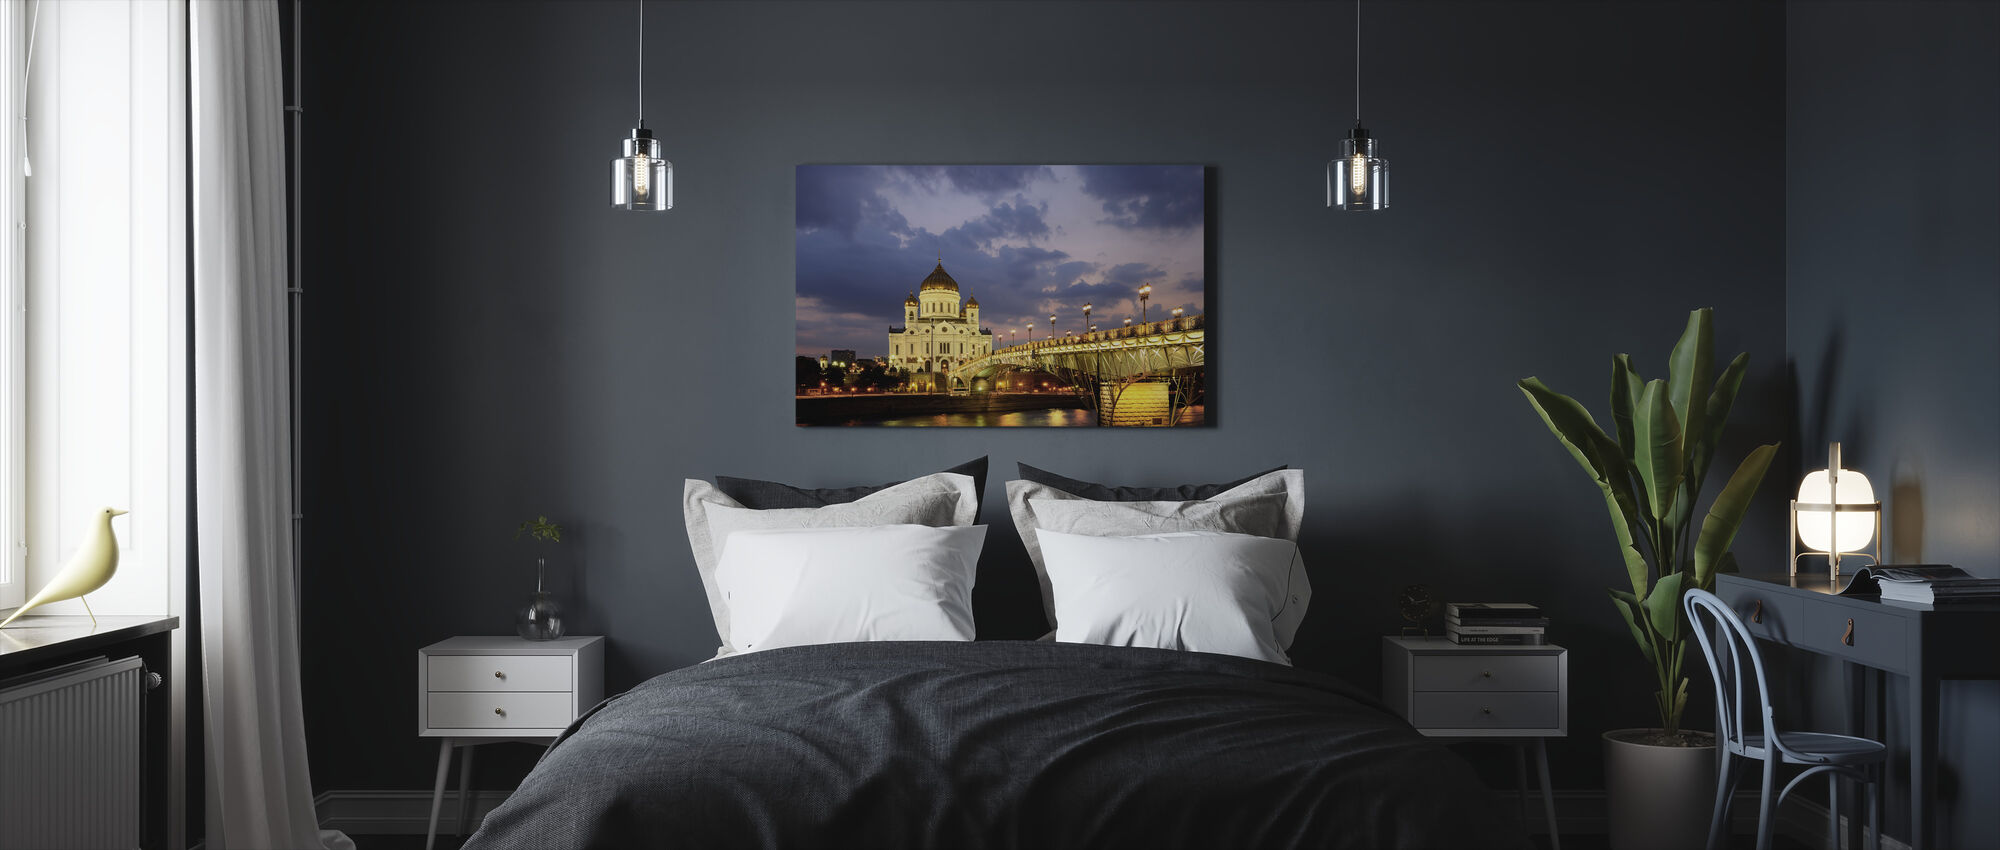 Moscow River at Night - Canvas print - Bedroom